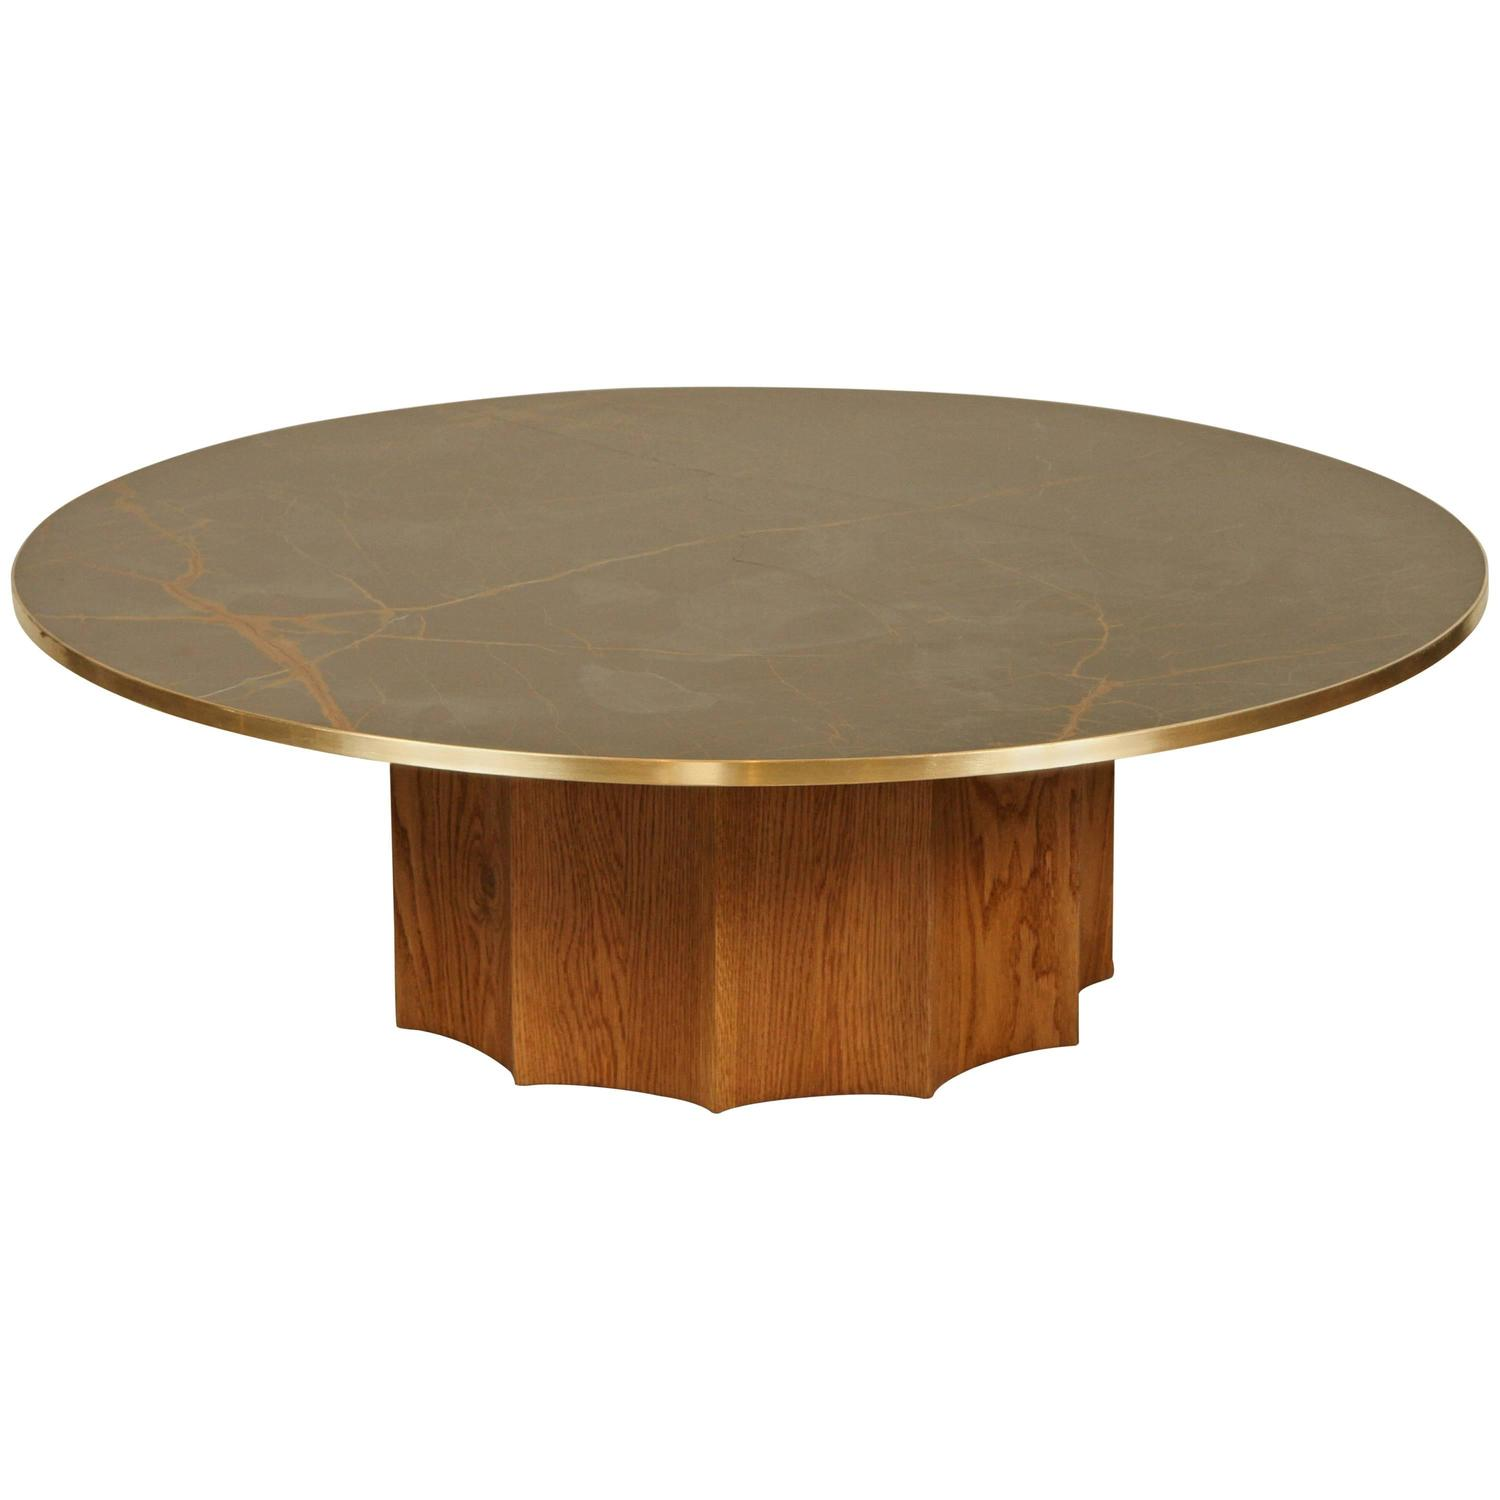 Norman Coffee Table by Lawson Fenning with Bronzetto Marble at